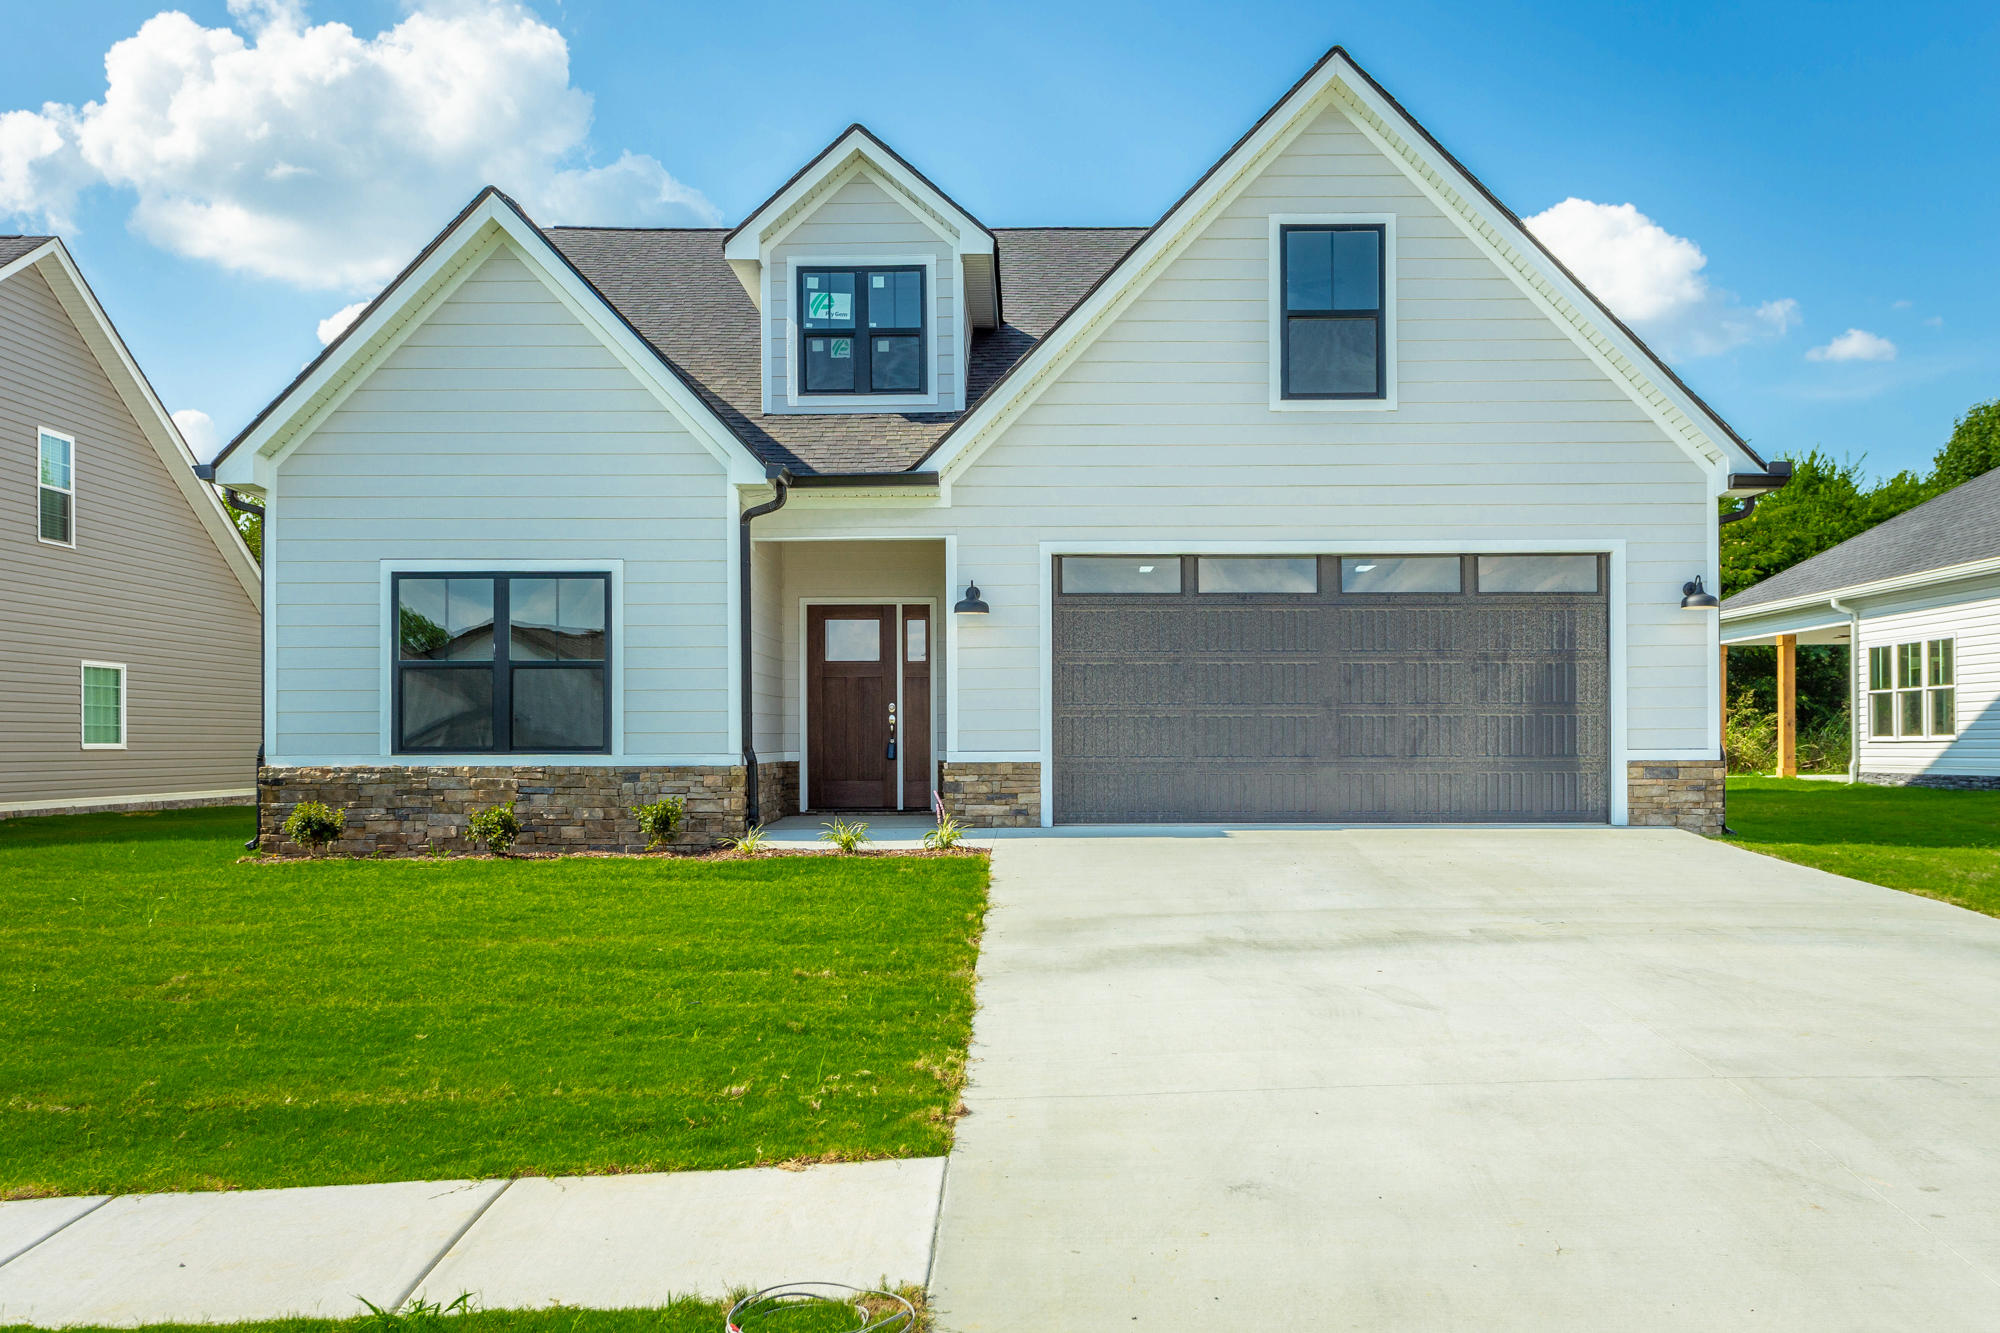 73 Browning Dr, Rossville, GA 30741